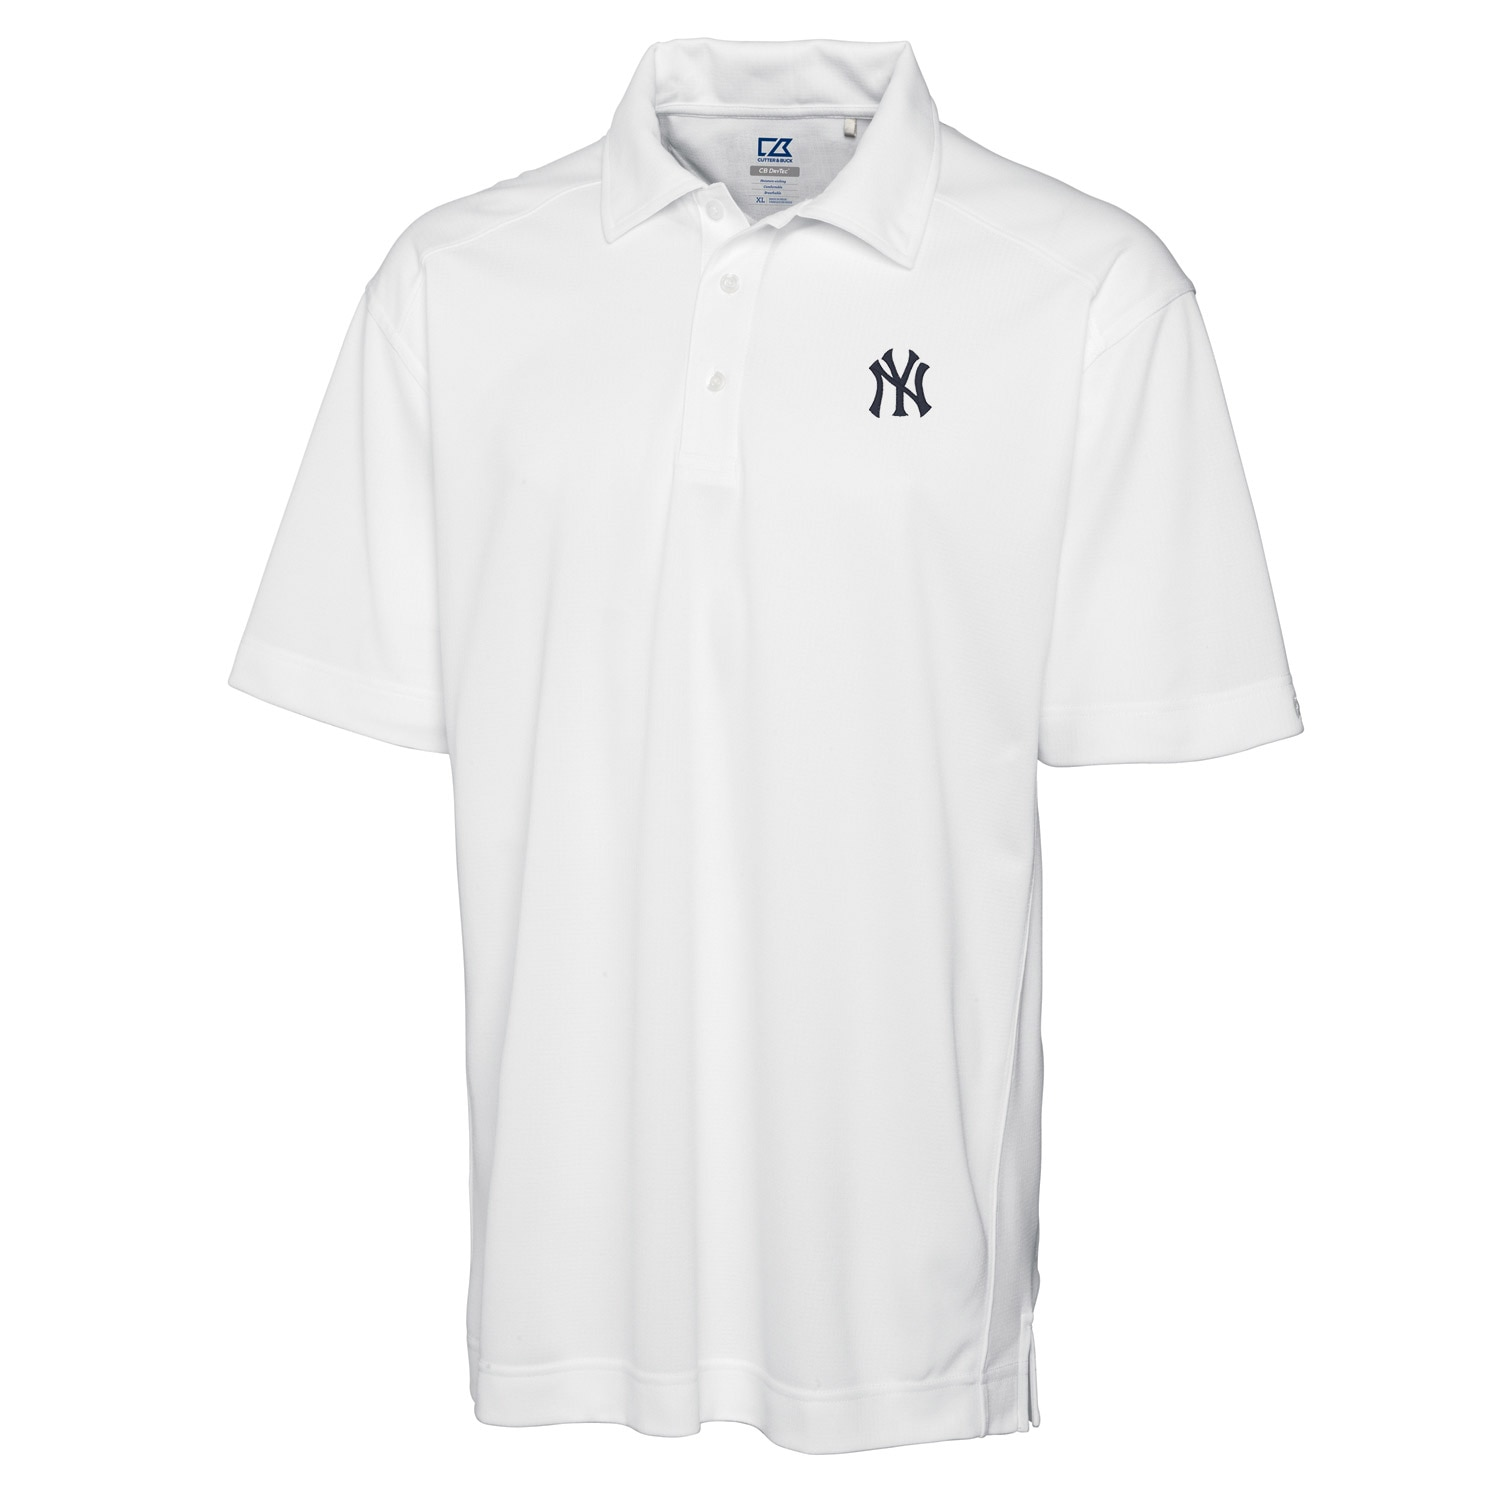 New York Yankees Cutter & Buck Big & Tall DryTec Genre Polo - White